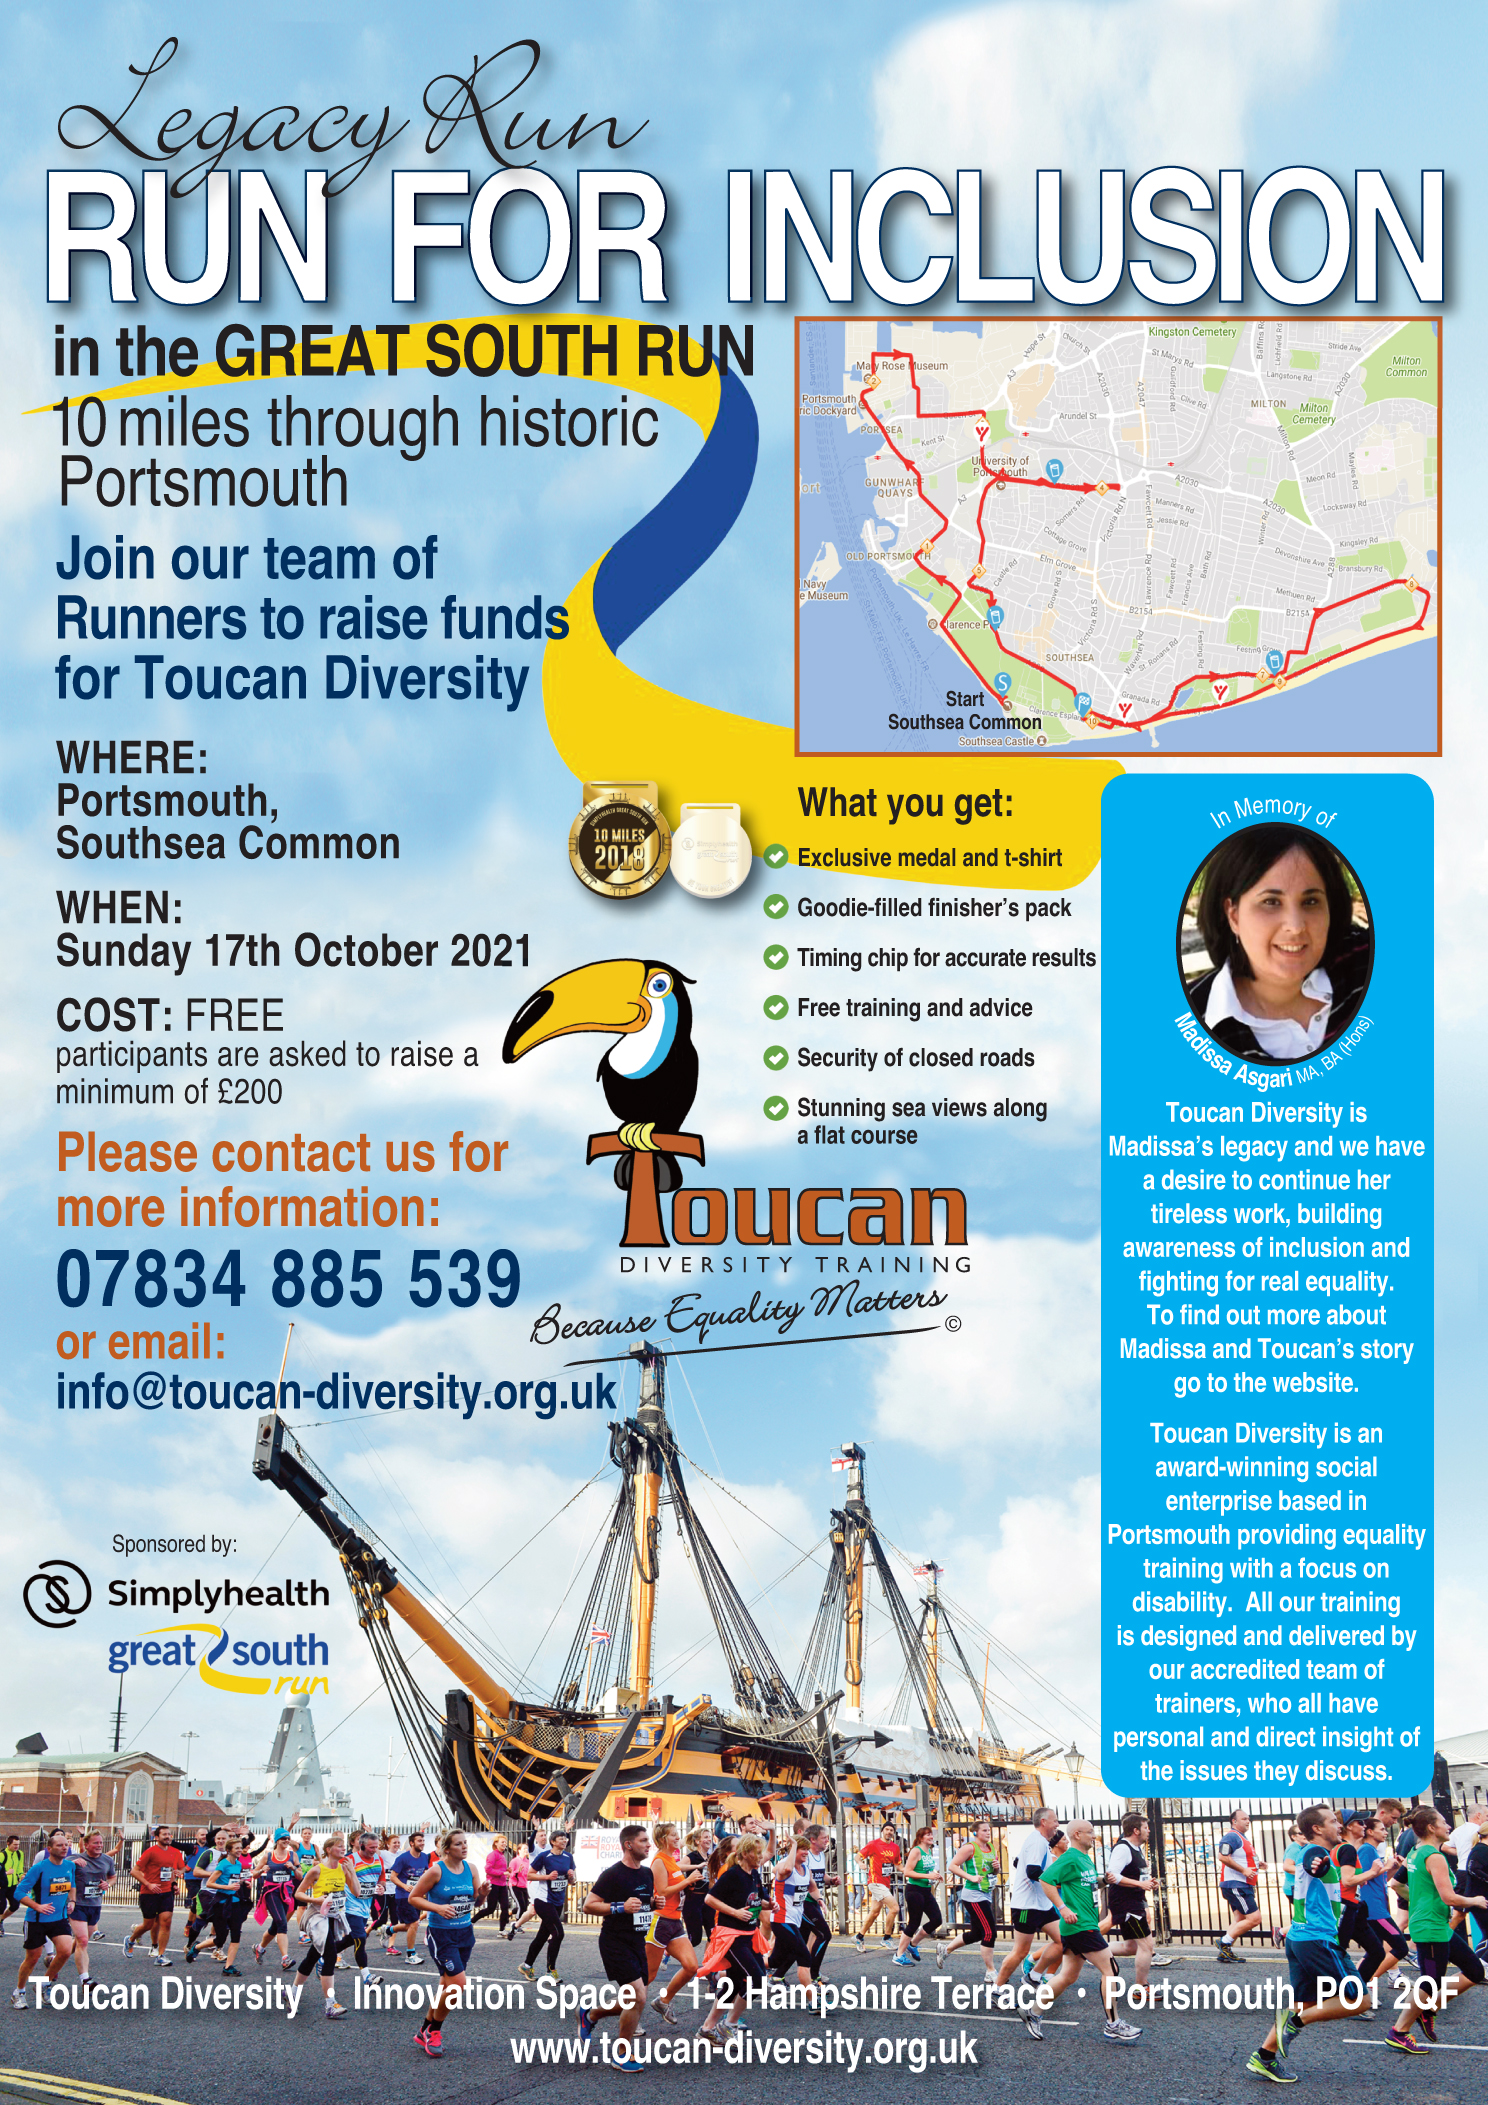 Poster for the Great South Run.